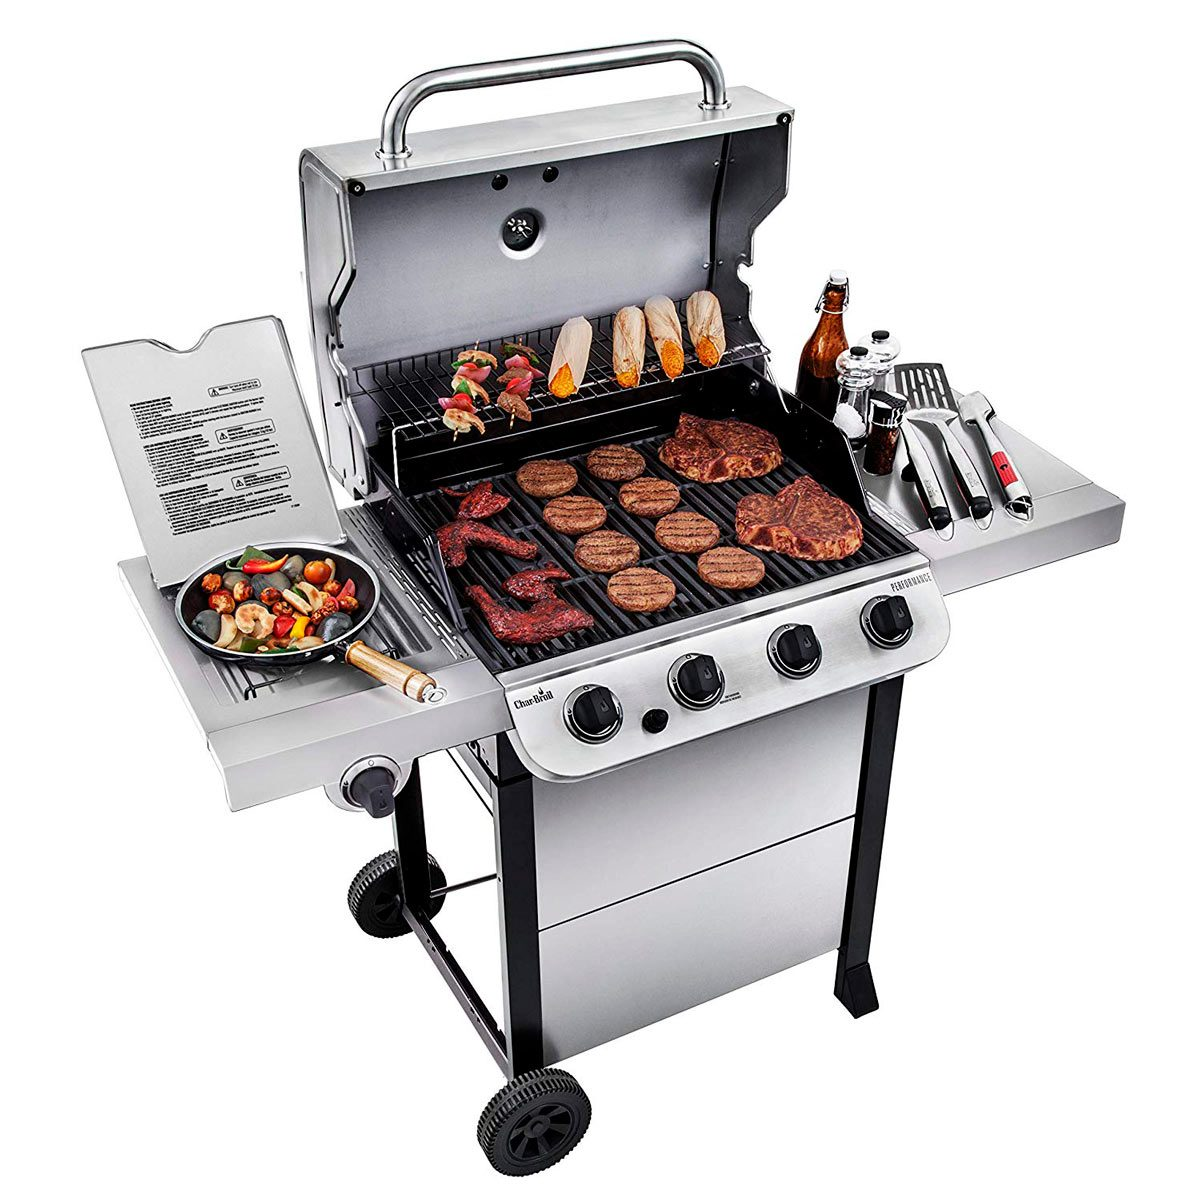 10 Best-Reviewed Gas Grills on Amazon